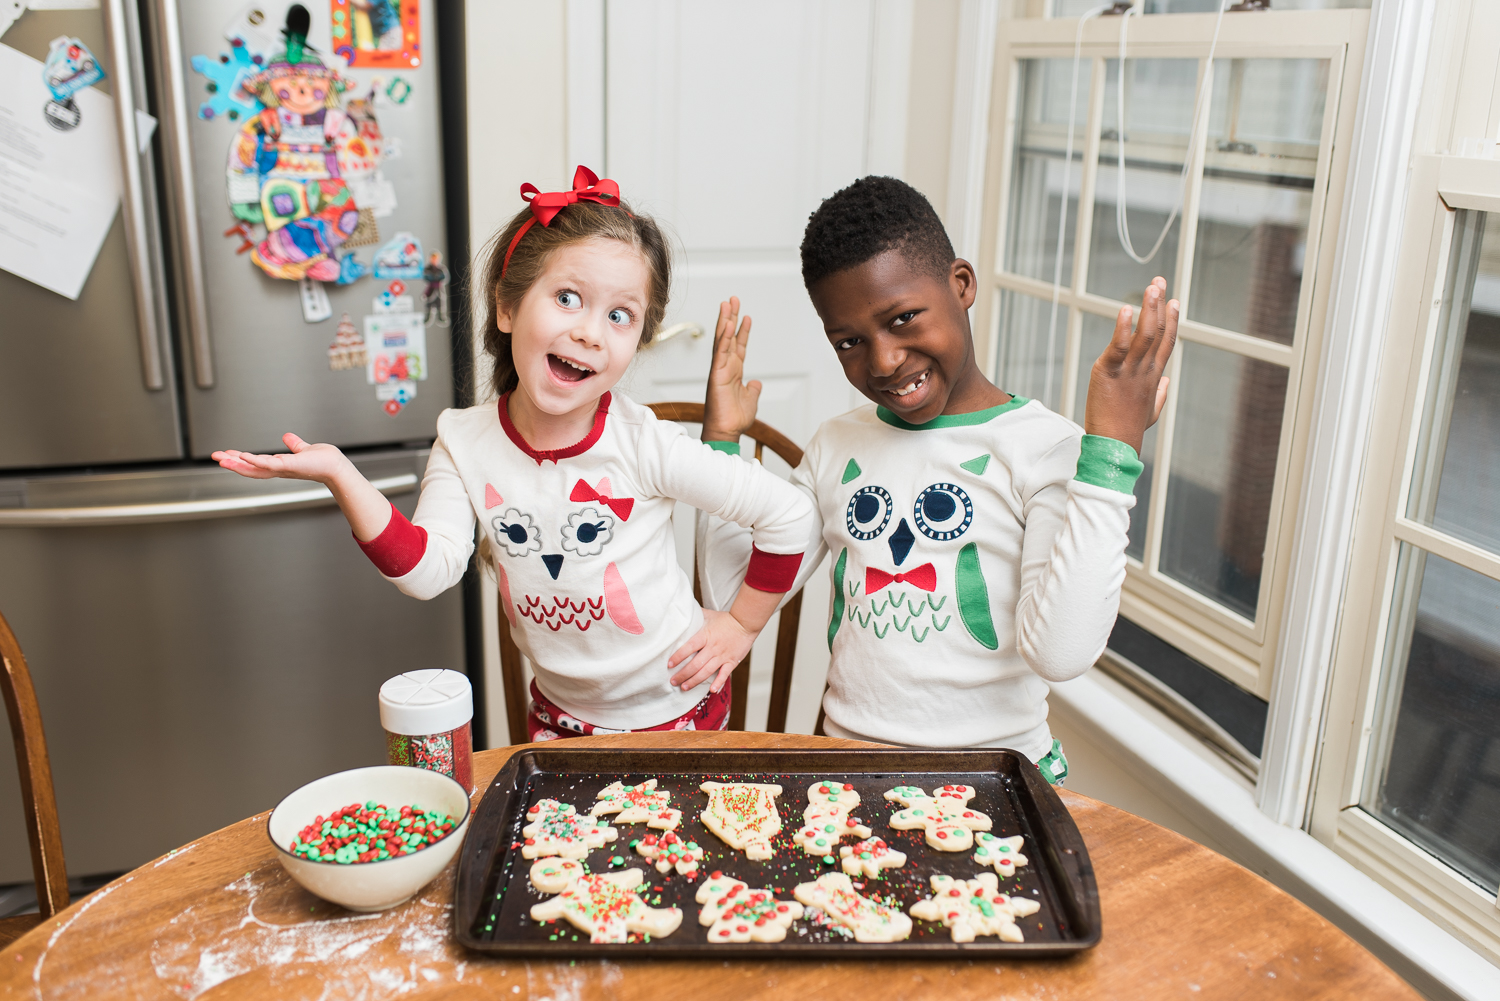 xmas-cookies-session-2.jpg